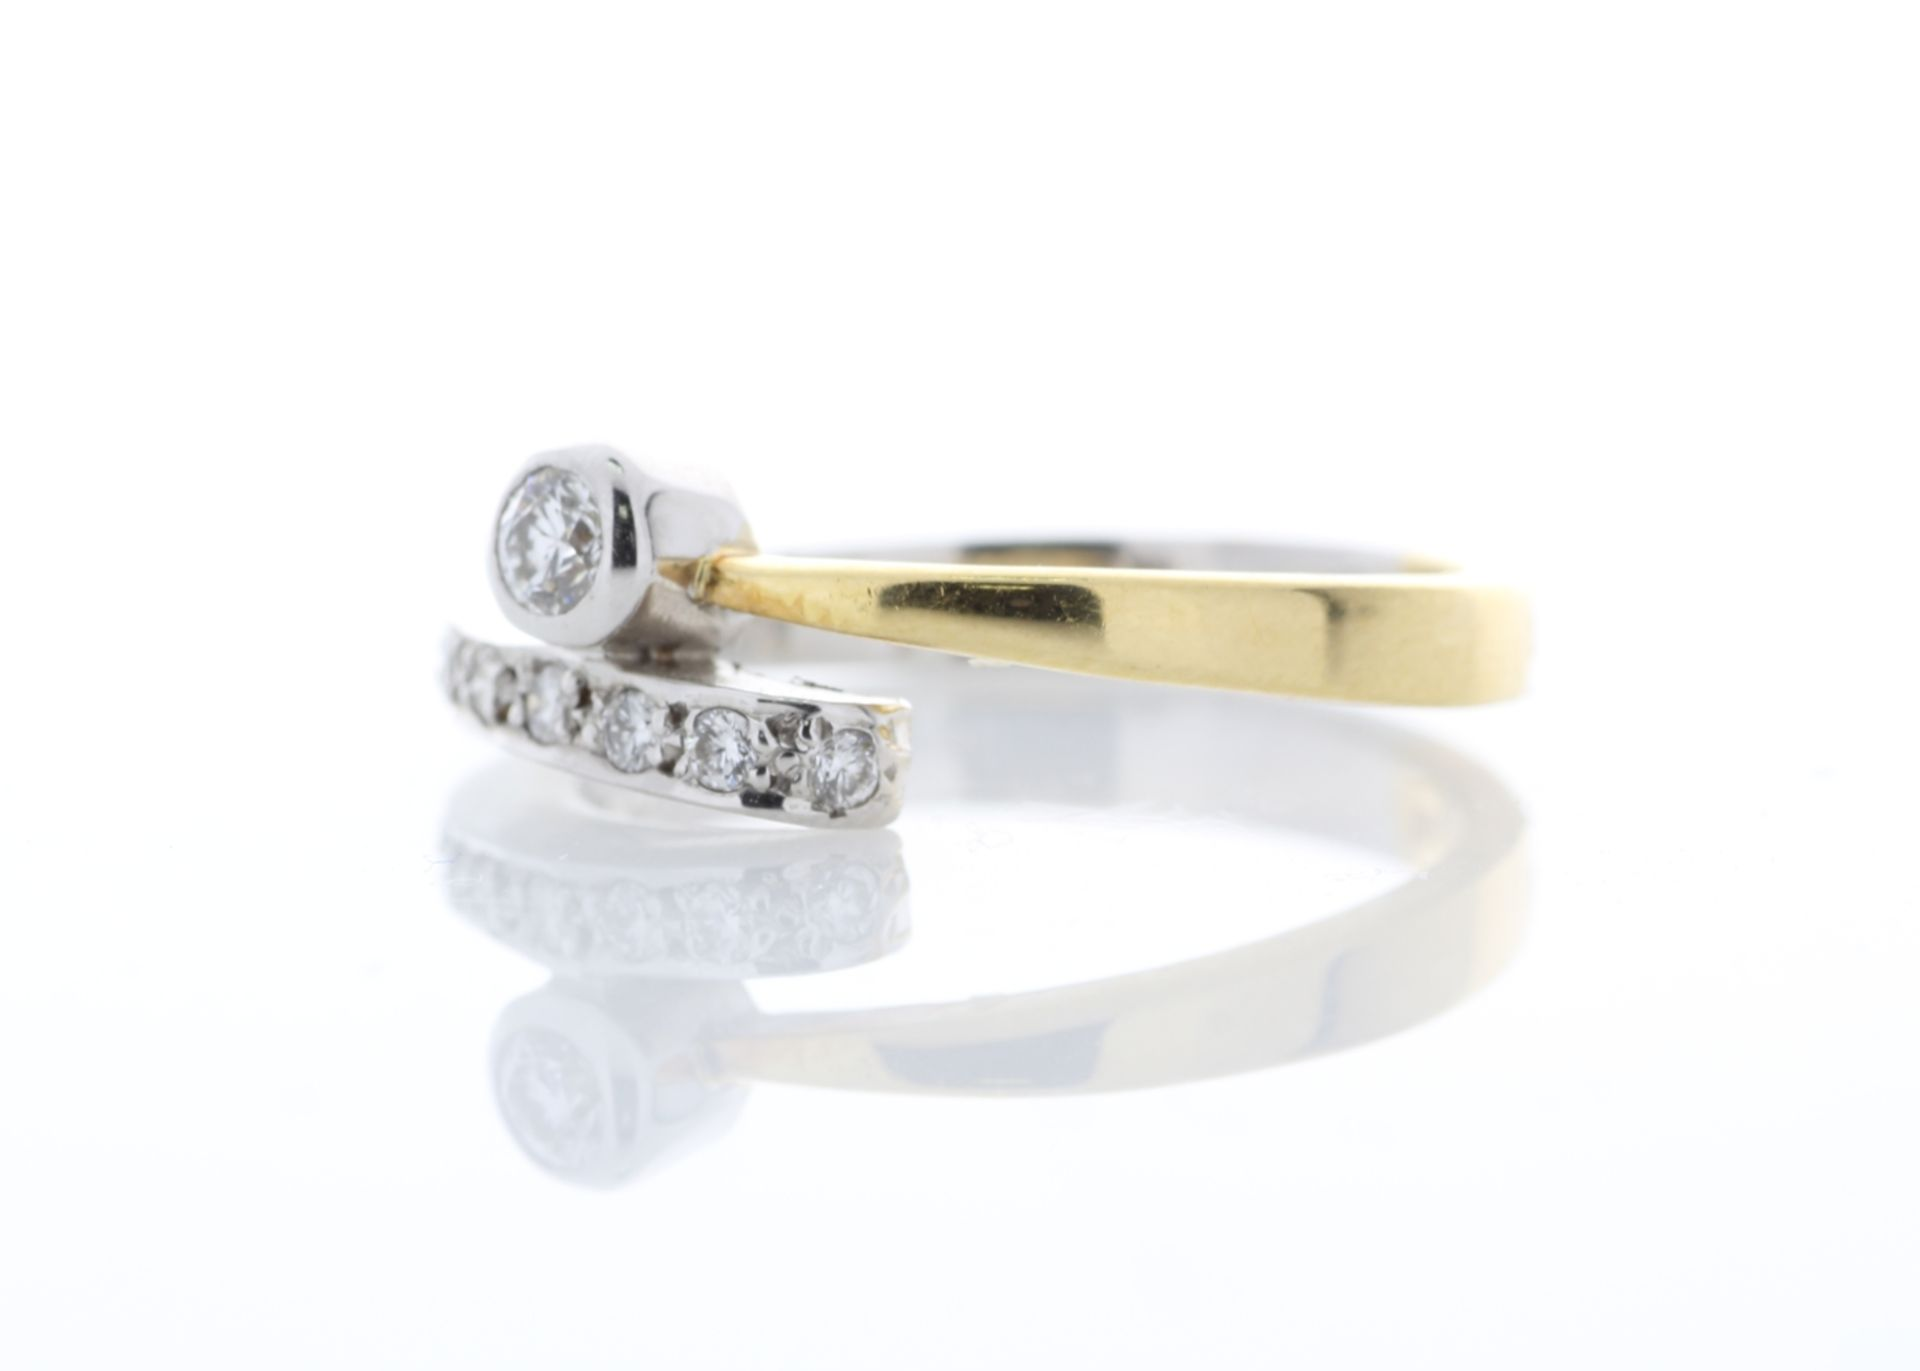 18ct Single Stone Rub Over With Stone Set Shoulders Diamond Ring 0.11 Carats - Valued by AGI £1, - Image 2 of 5